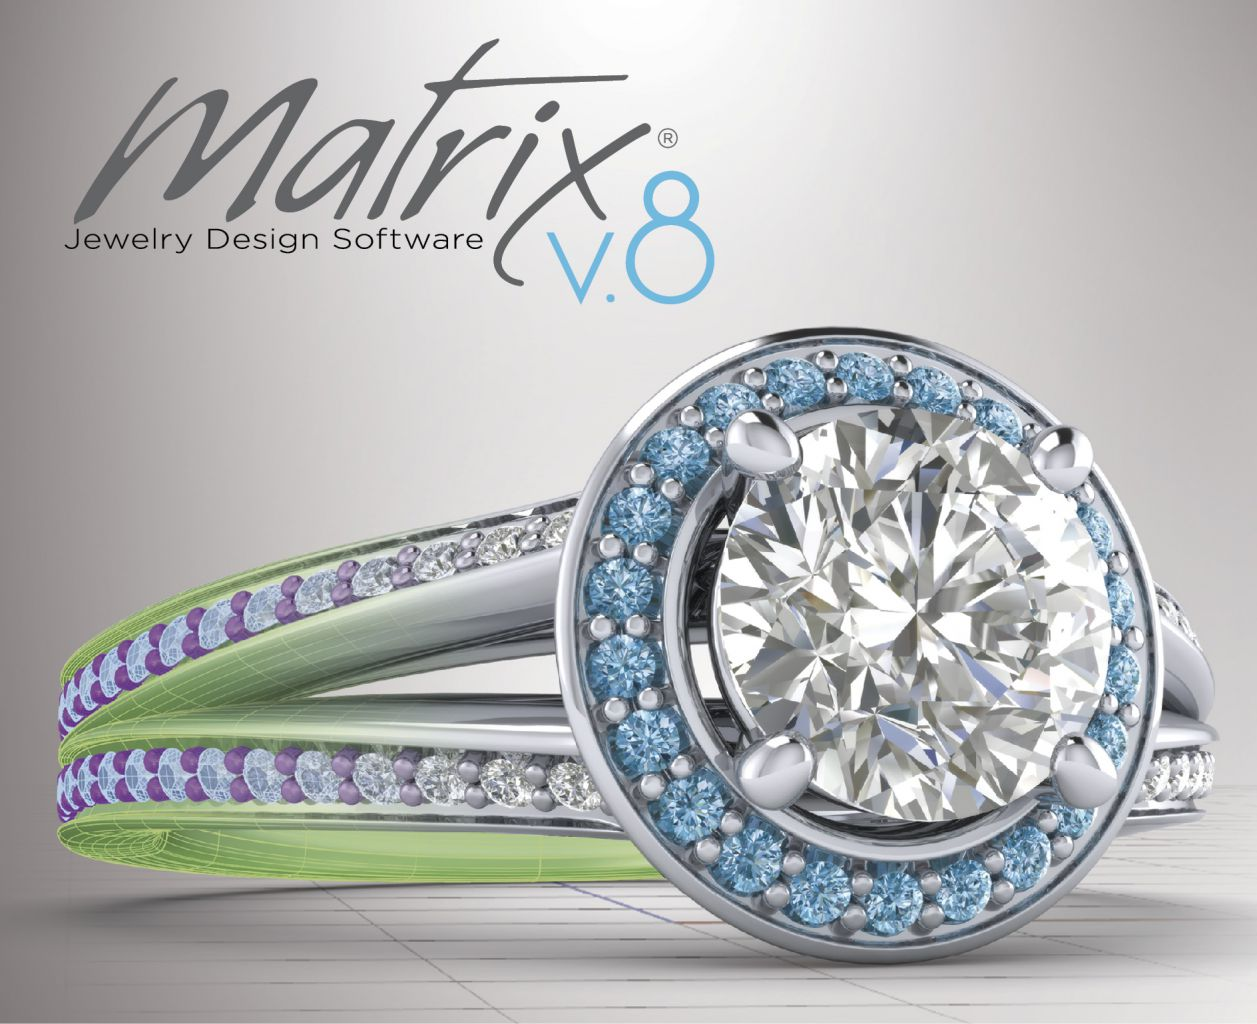 GemVision Martix 8.0 new release